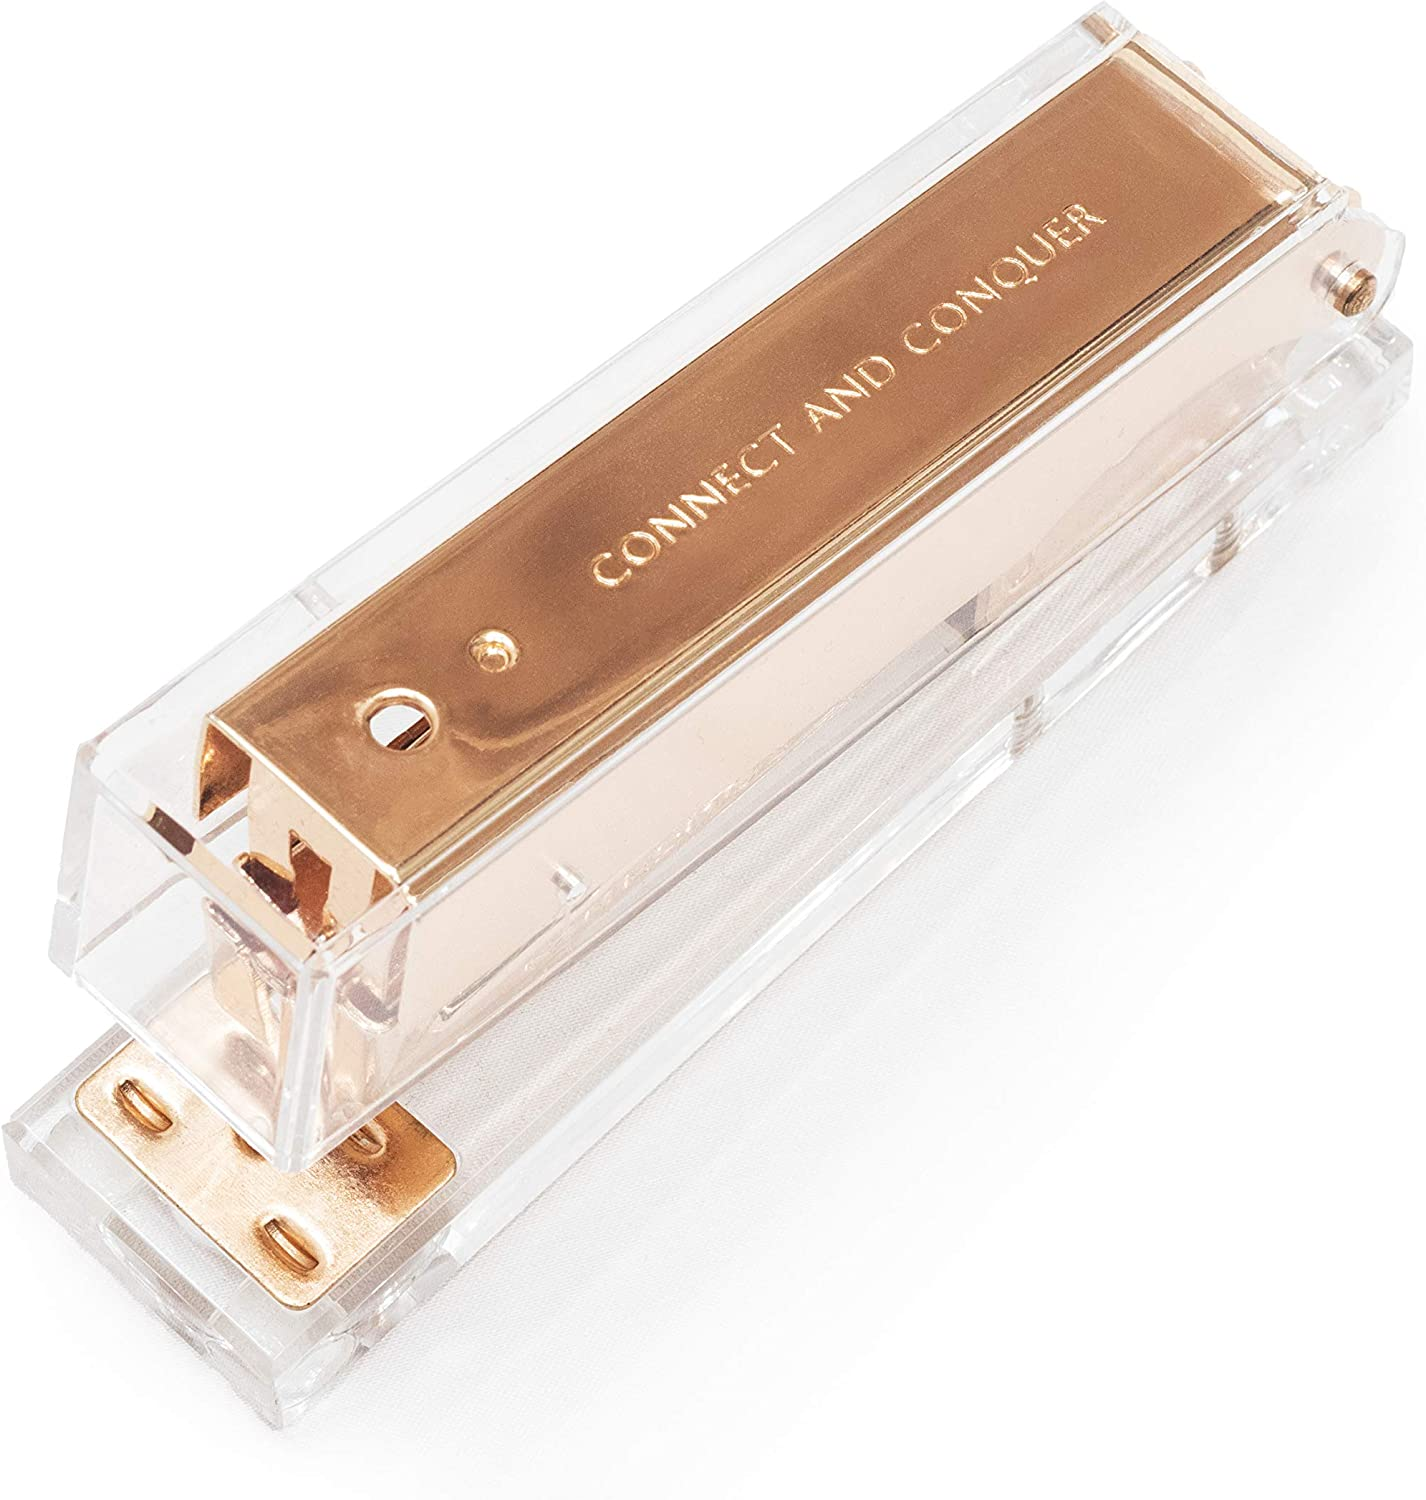 Mesmos Rose Gold Stapler Large, Engraved with 'Connect and Conquer'. Cute & Fancy Office Desk Supplies for Women. Pretty Cubicle Decor, Home Desk, Stationary Accessories and Aesthetic School Supplies